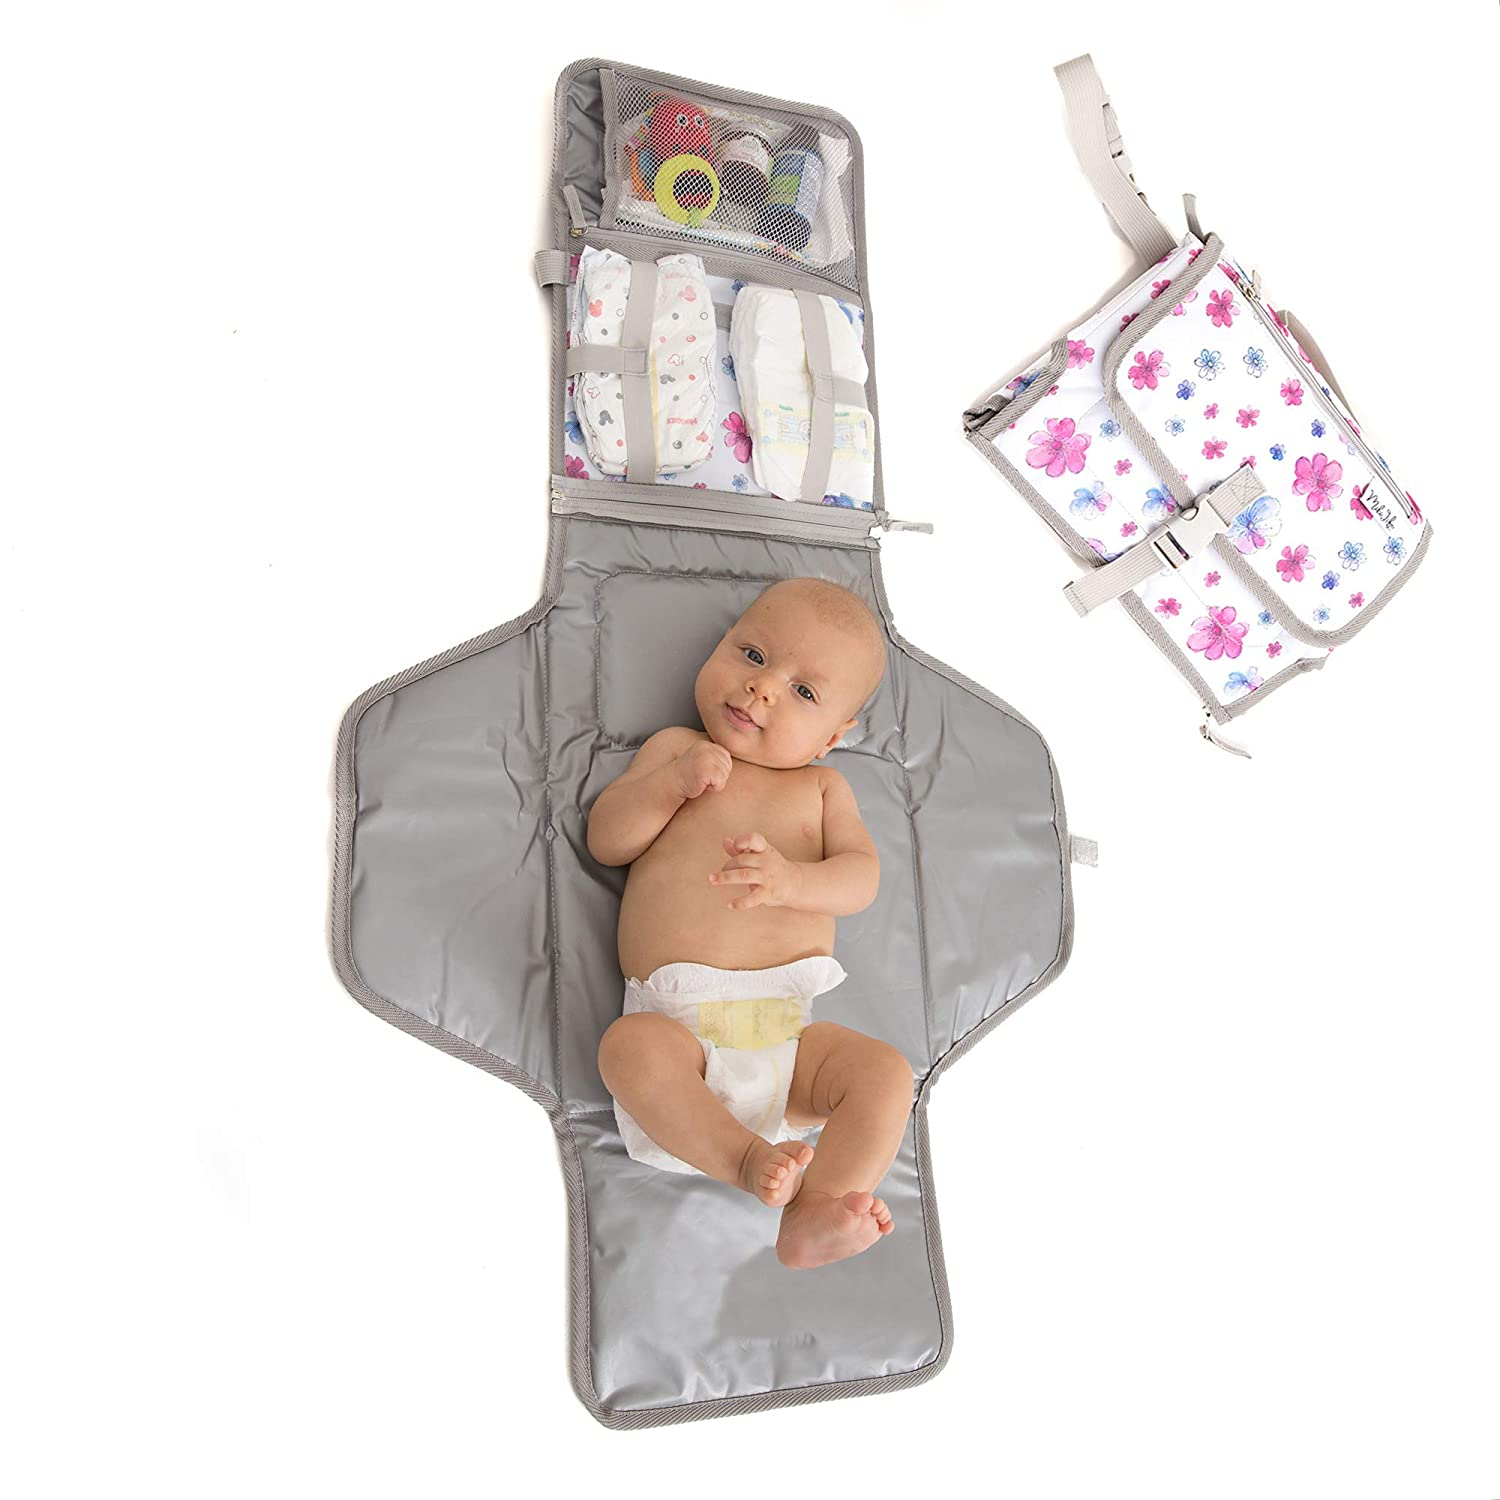 Baby Portable Changing Pad   Lightweight Travel Diaper Station Kit with Waterproof and Cushioned Pad   Foldable Pad with Pockets   Changing Organizer Bag for Toddlers Infants & Newborns   White